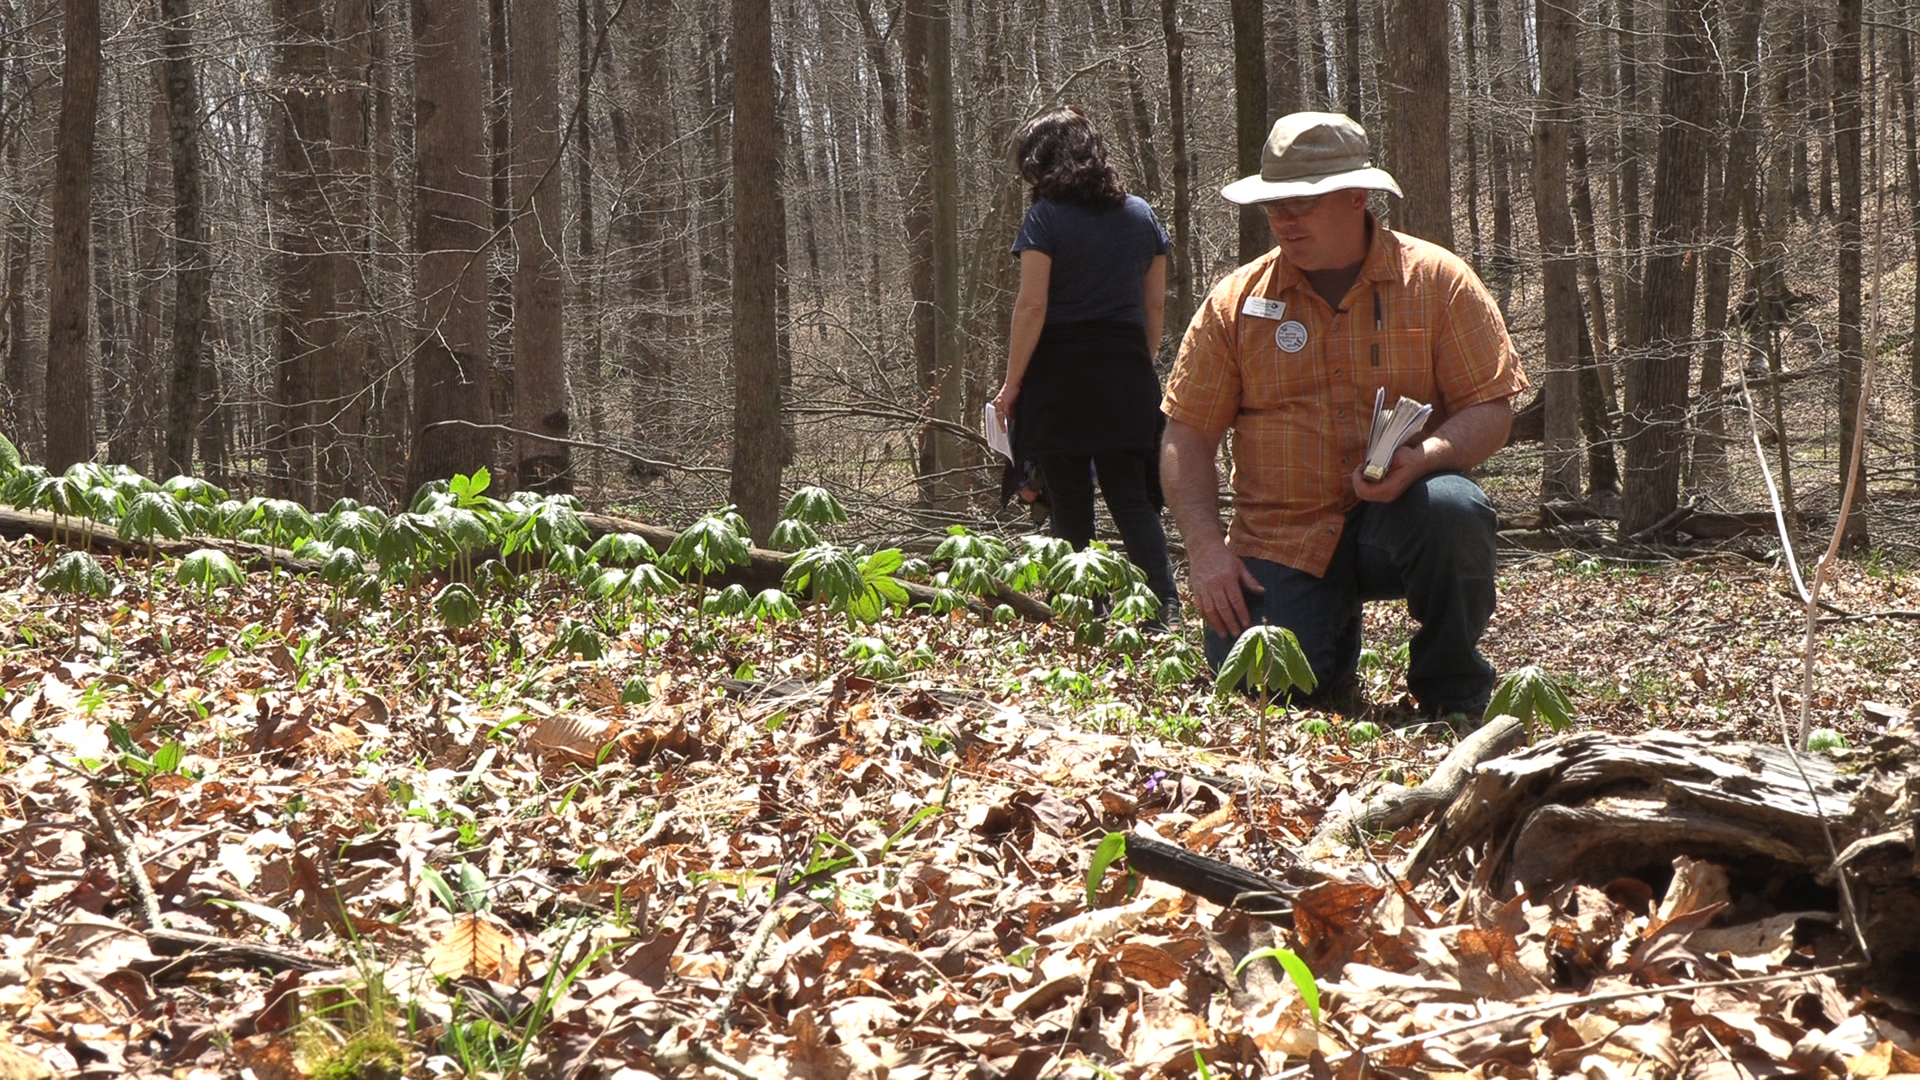 On this picture you can see Dan Shaver of the Nature Conservancy leading the Fire and Flowers tour.